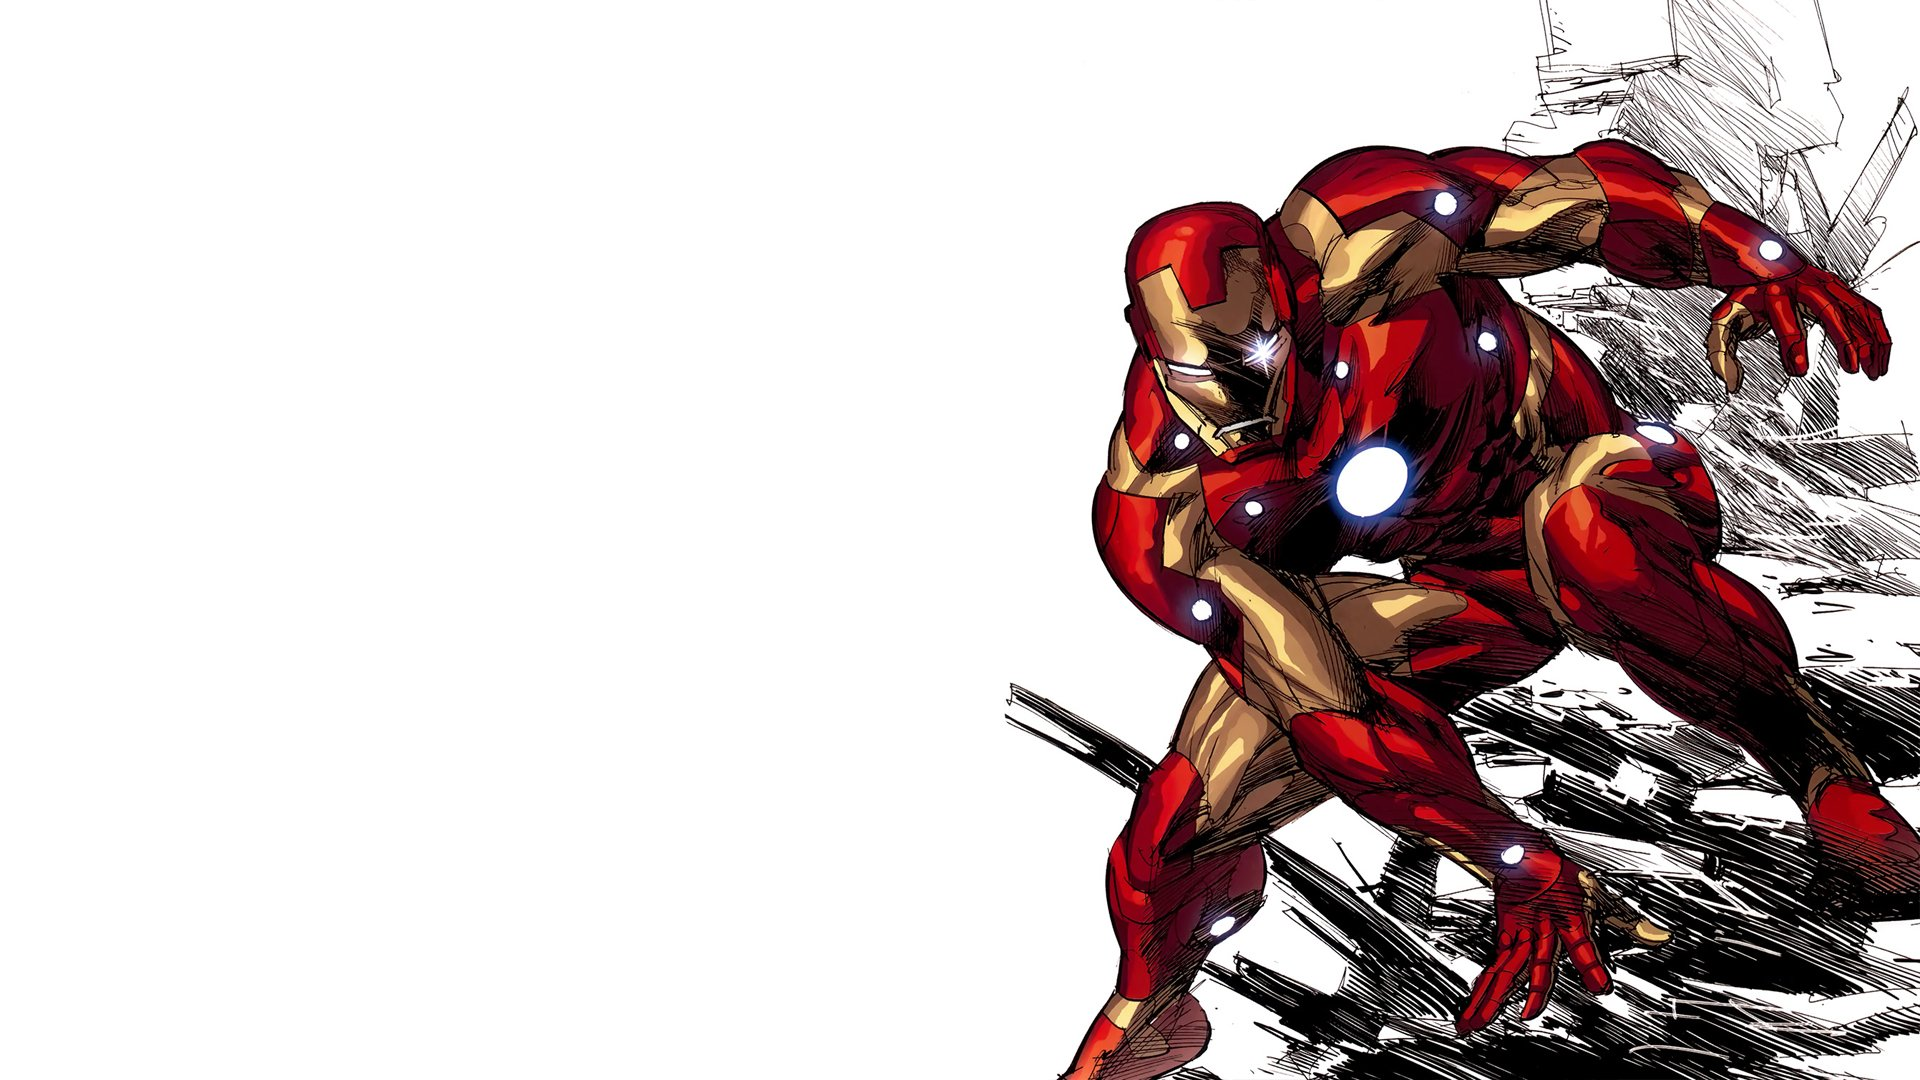 Iron Man Marvel Comics wallpaper 1920x1080 318432 WallpaperUP 1920x1080